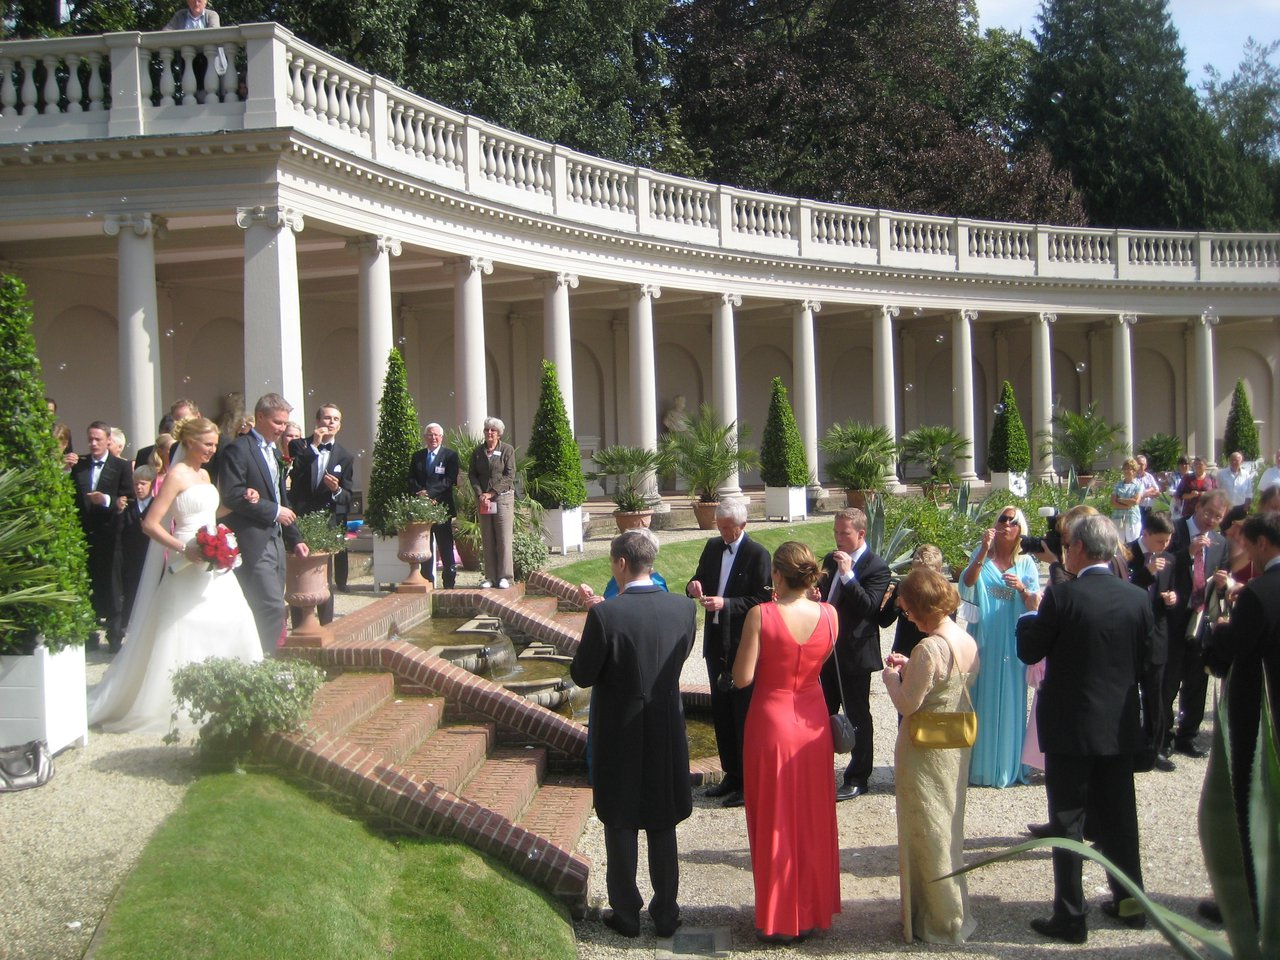 Weddings in Hotel De Keizerskroon